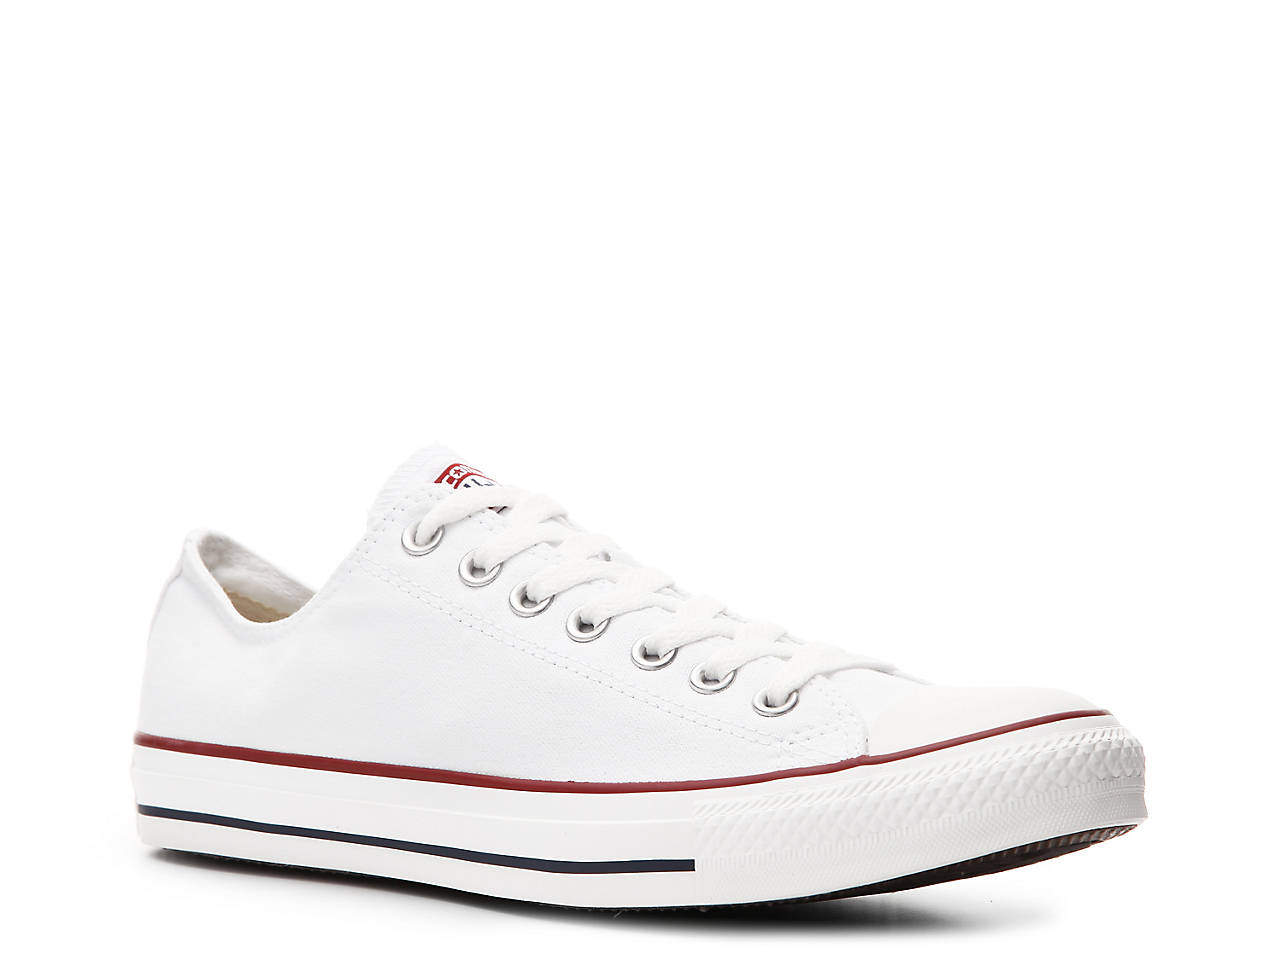 74af937c4544 Converse Chuck Taylor All Star Sneaker - Men s Men s Shoes